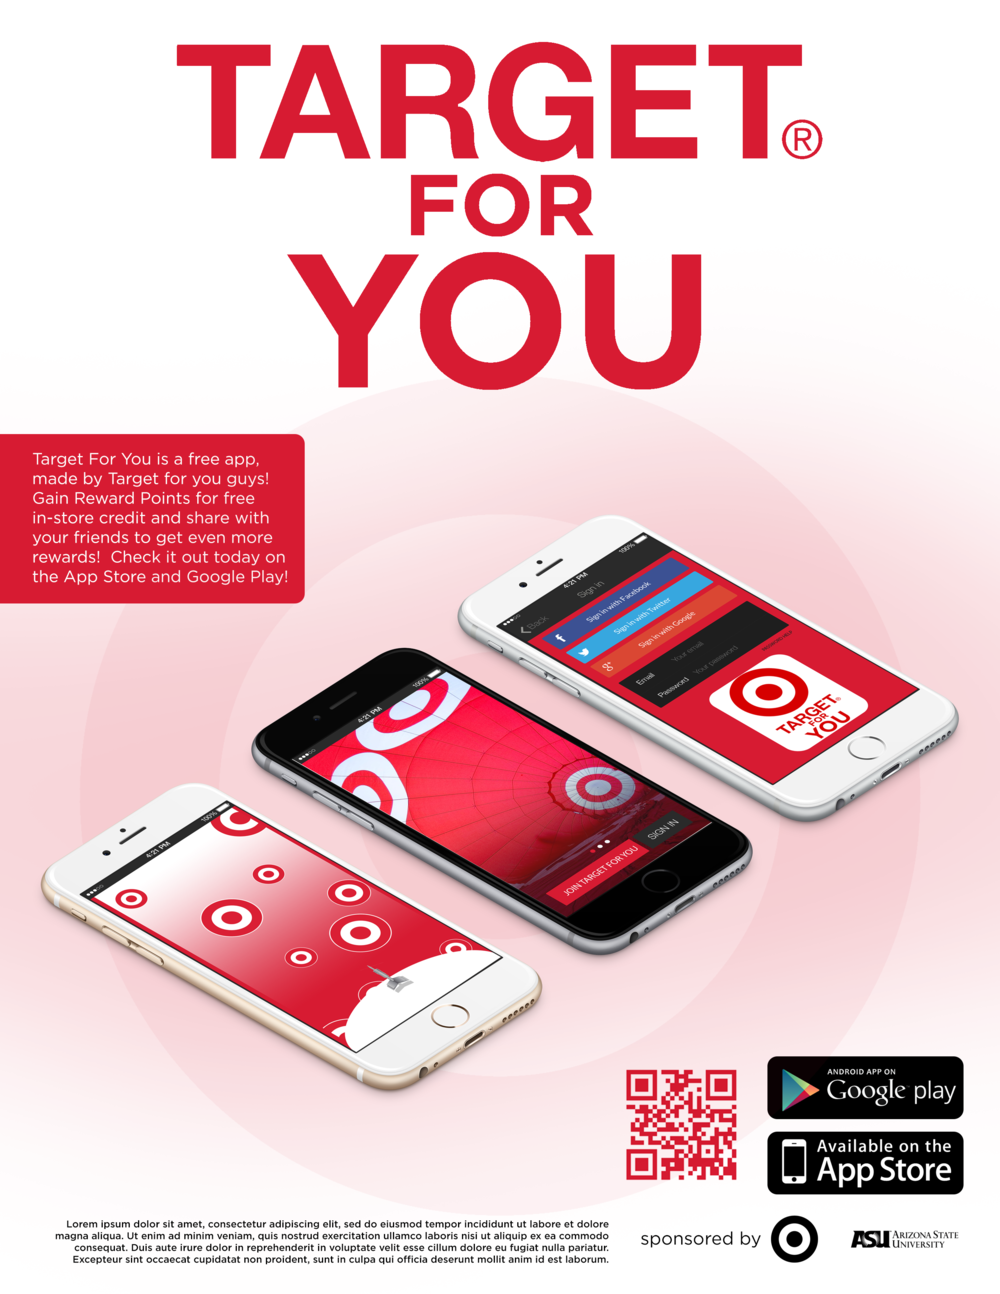 This is a Target print ad that I designed for a new marketing campaign idea.